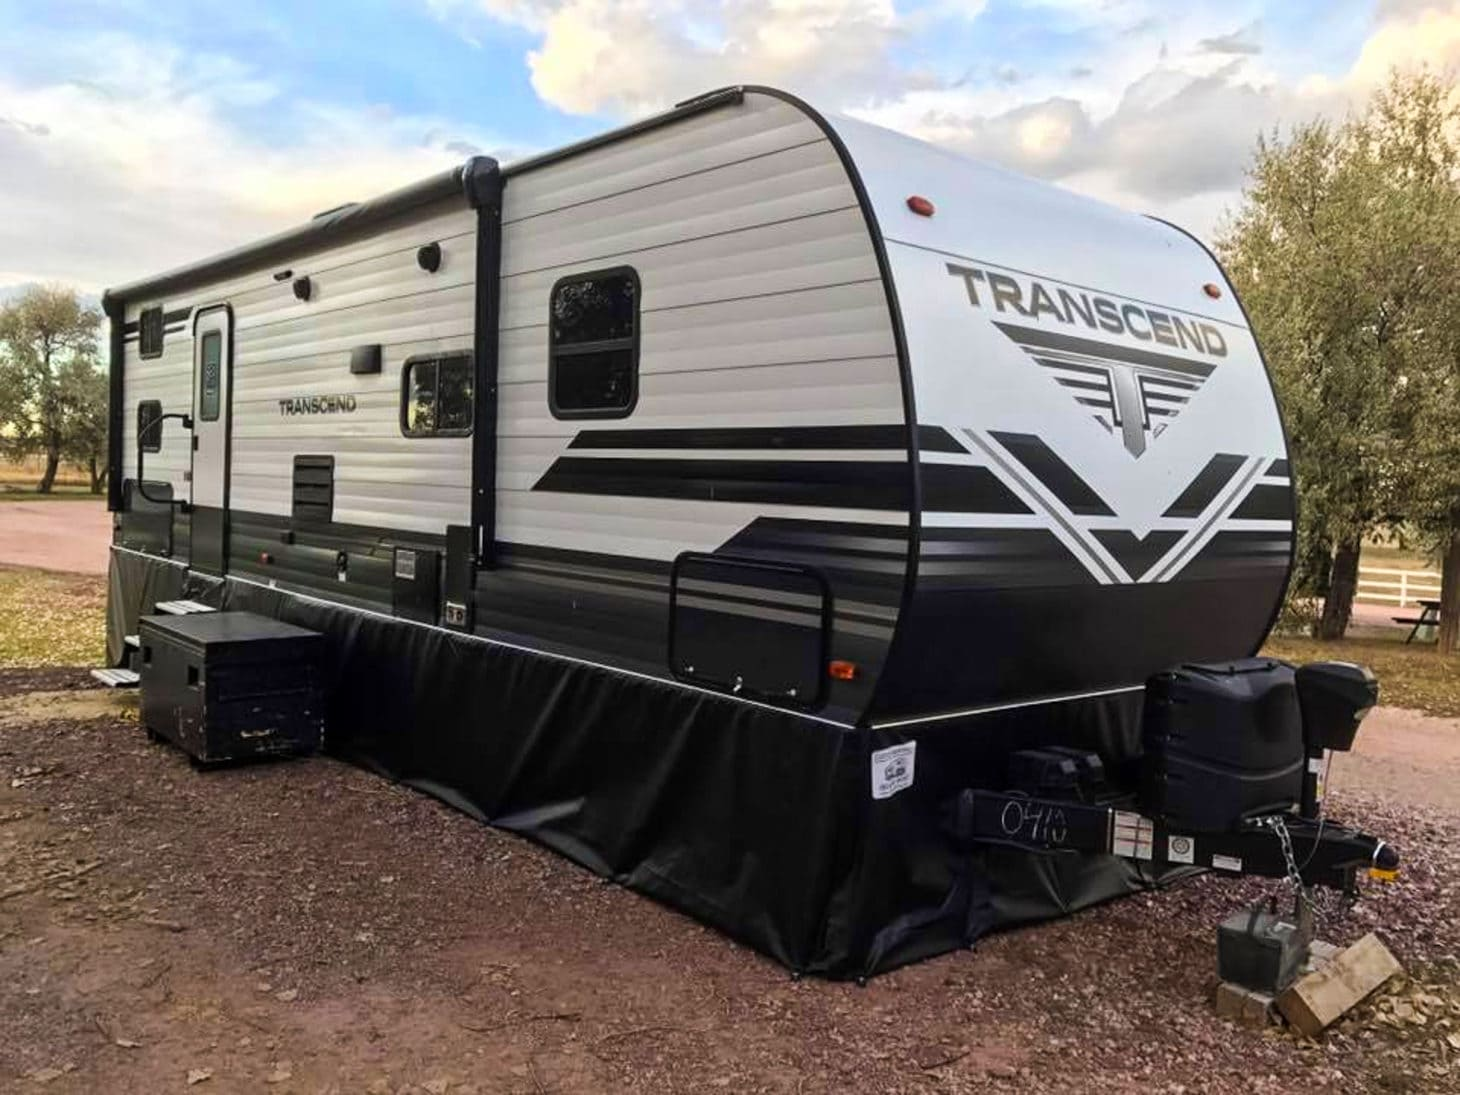 RV parked with skirting for winter